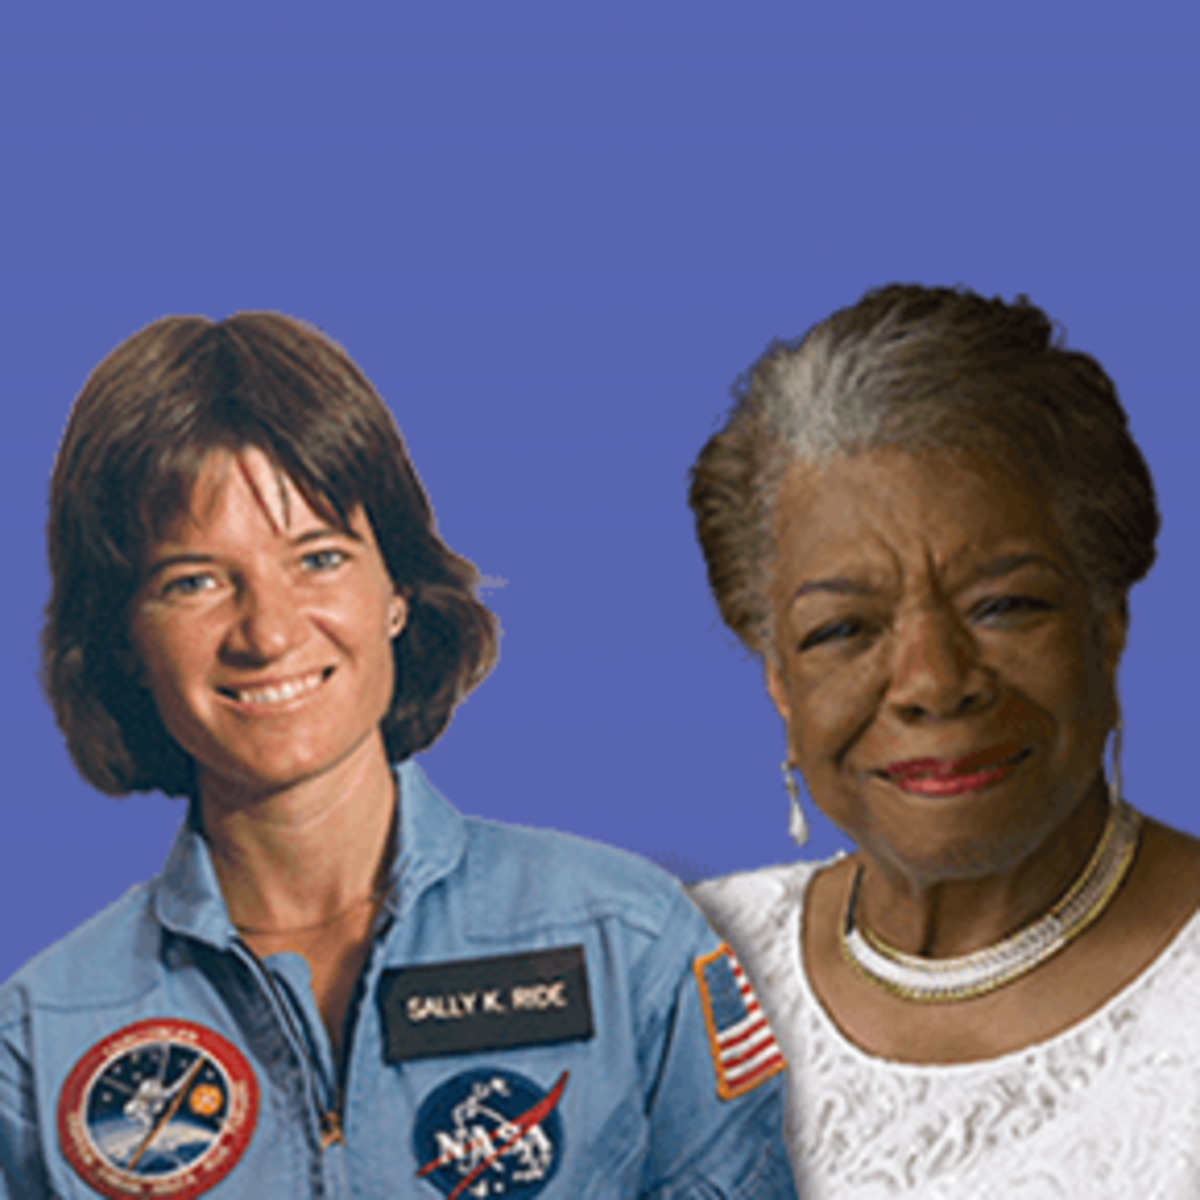 Dr. Sally Ride (left) and Maya Angelou. (Image courtesy U.S. Mint.)